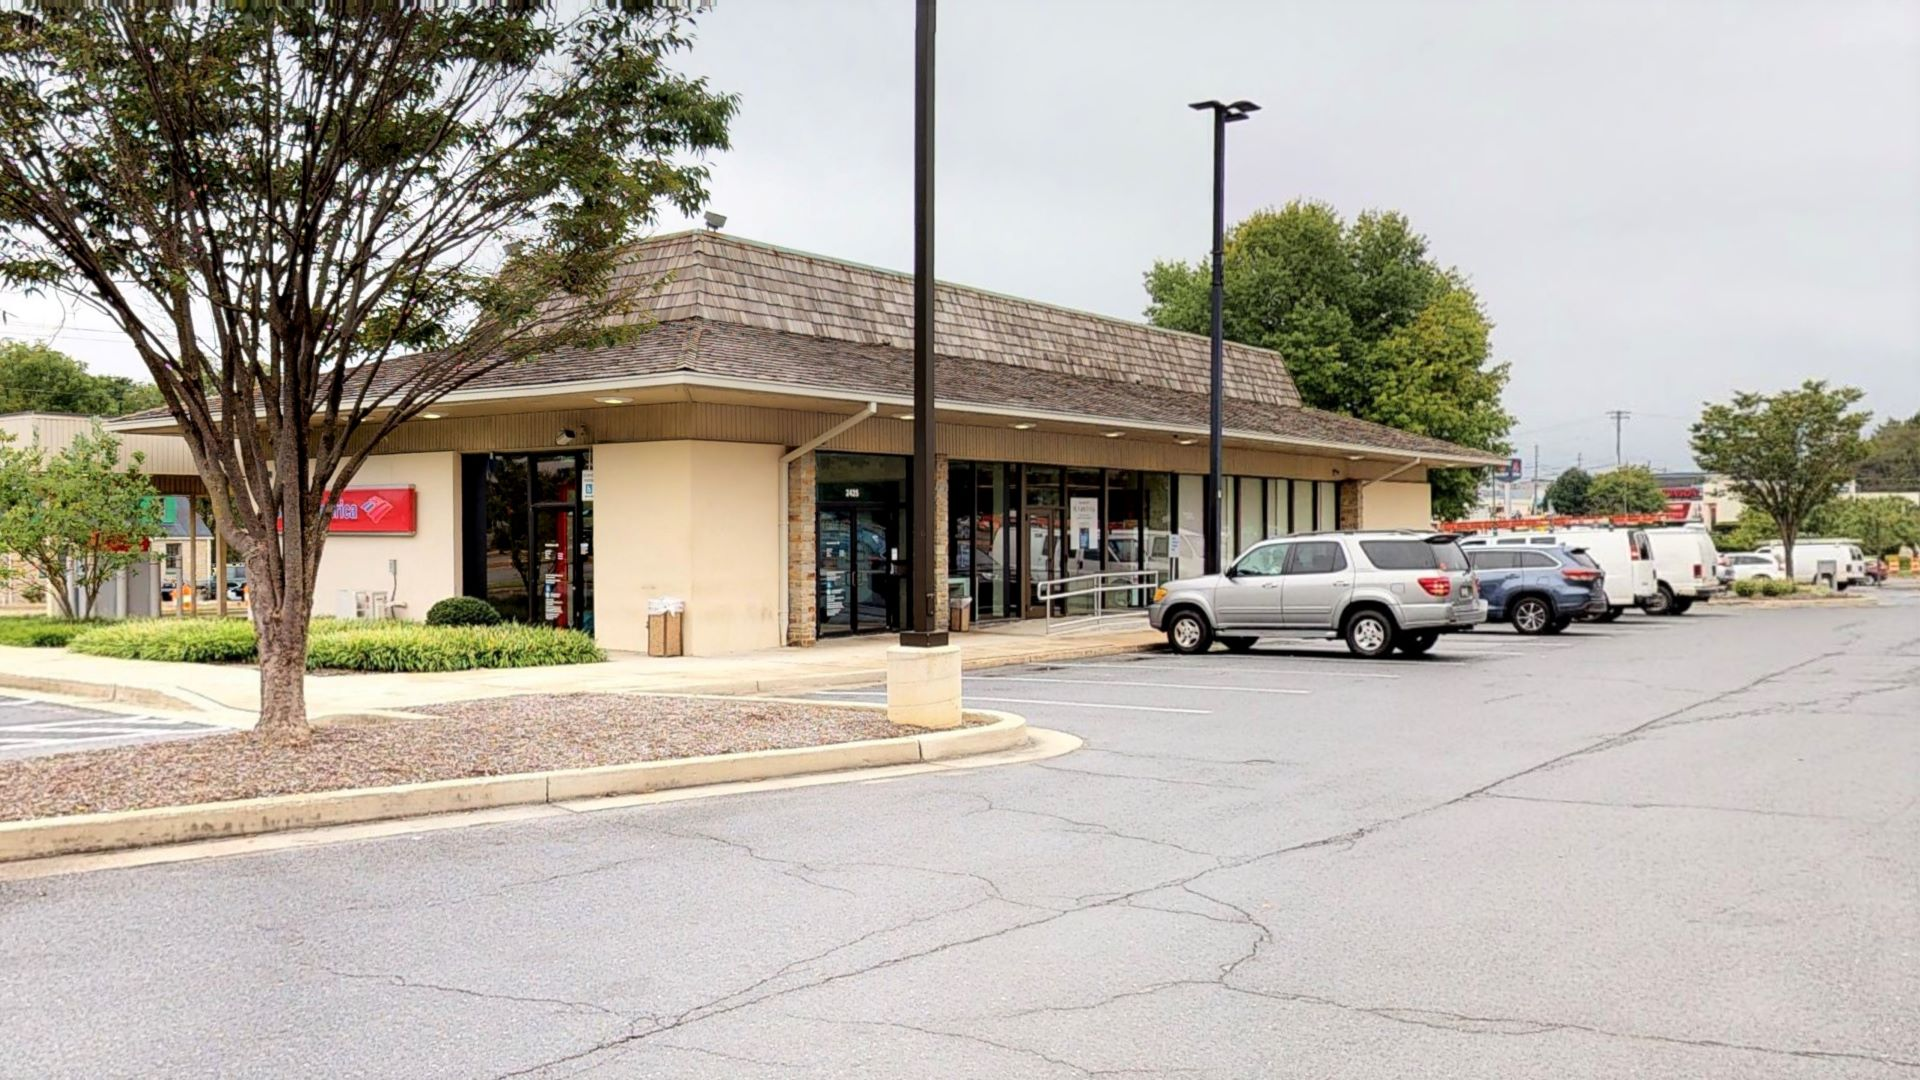 Bank of America financial center with drive-thru ATM | 2425 York Rd, Timonium, MD 21093